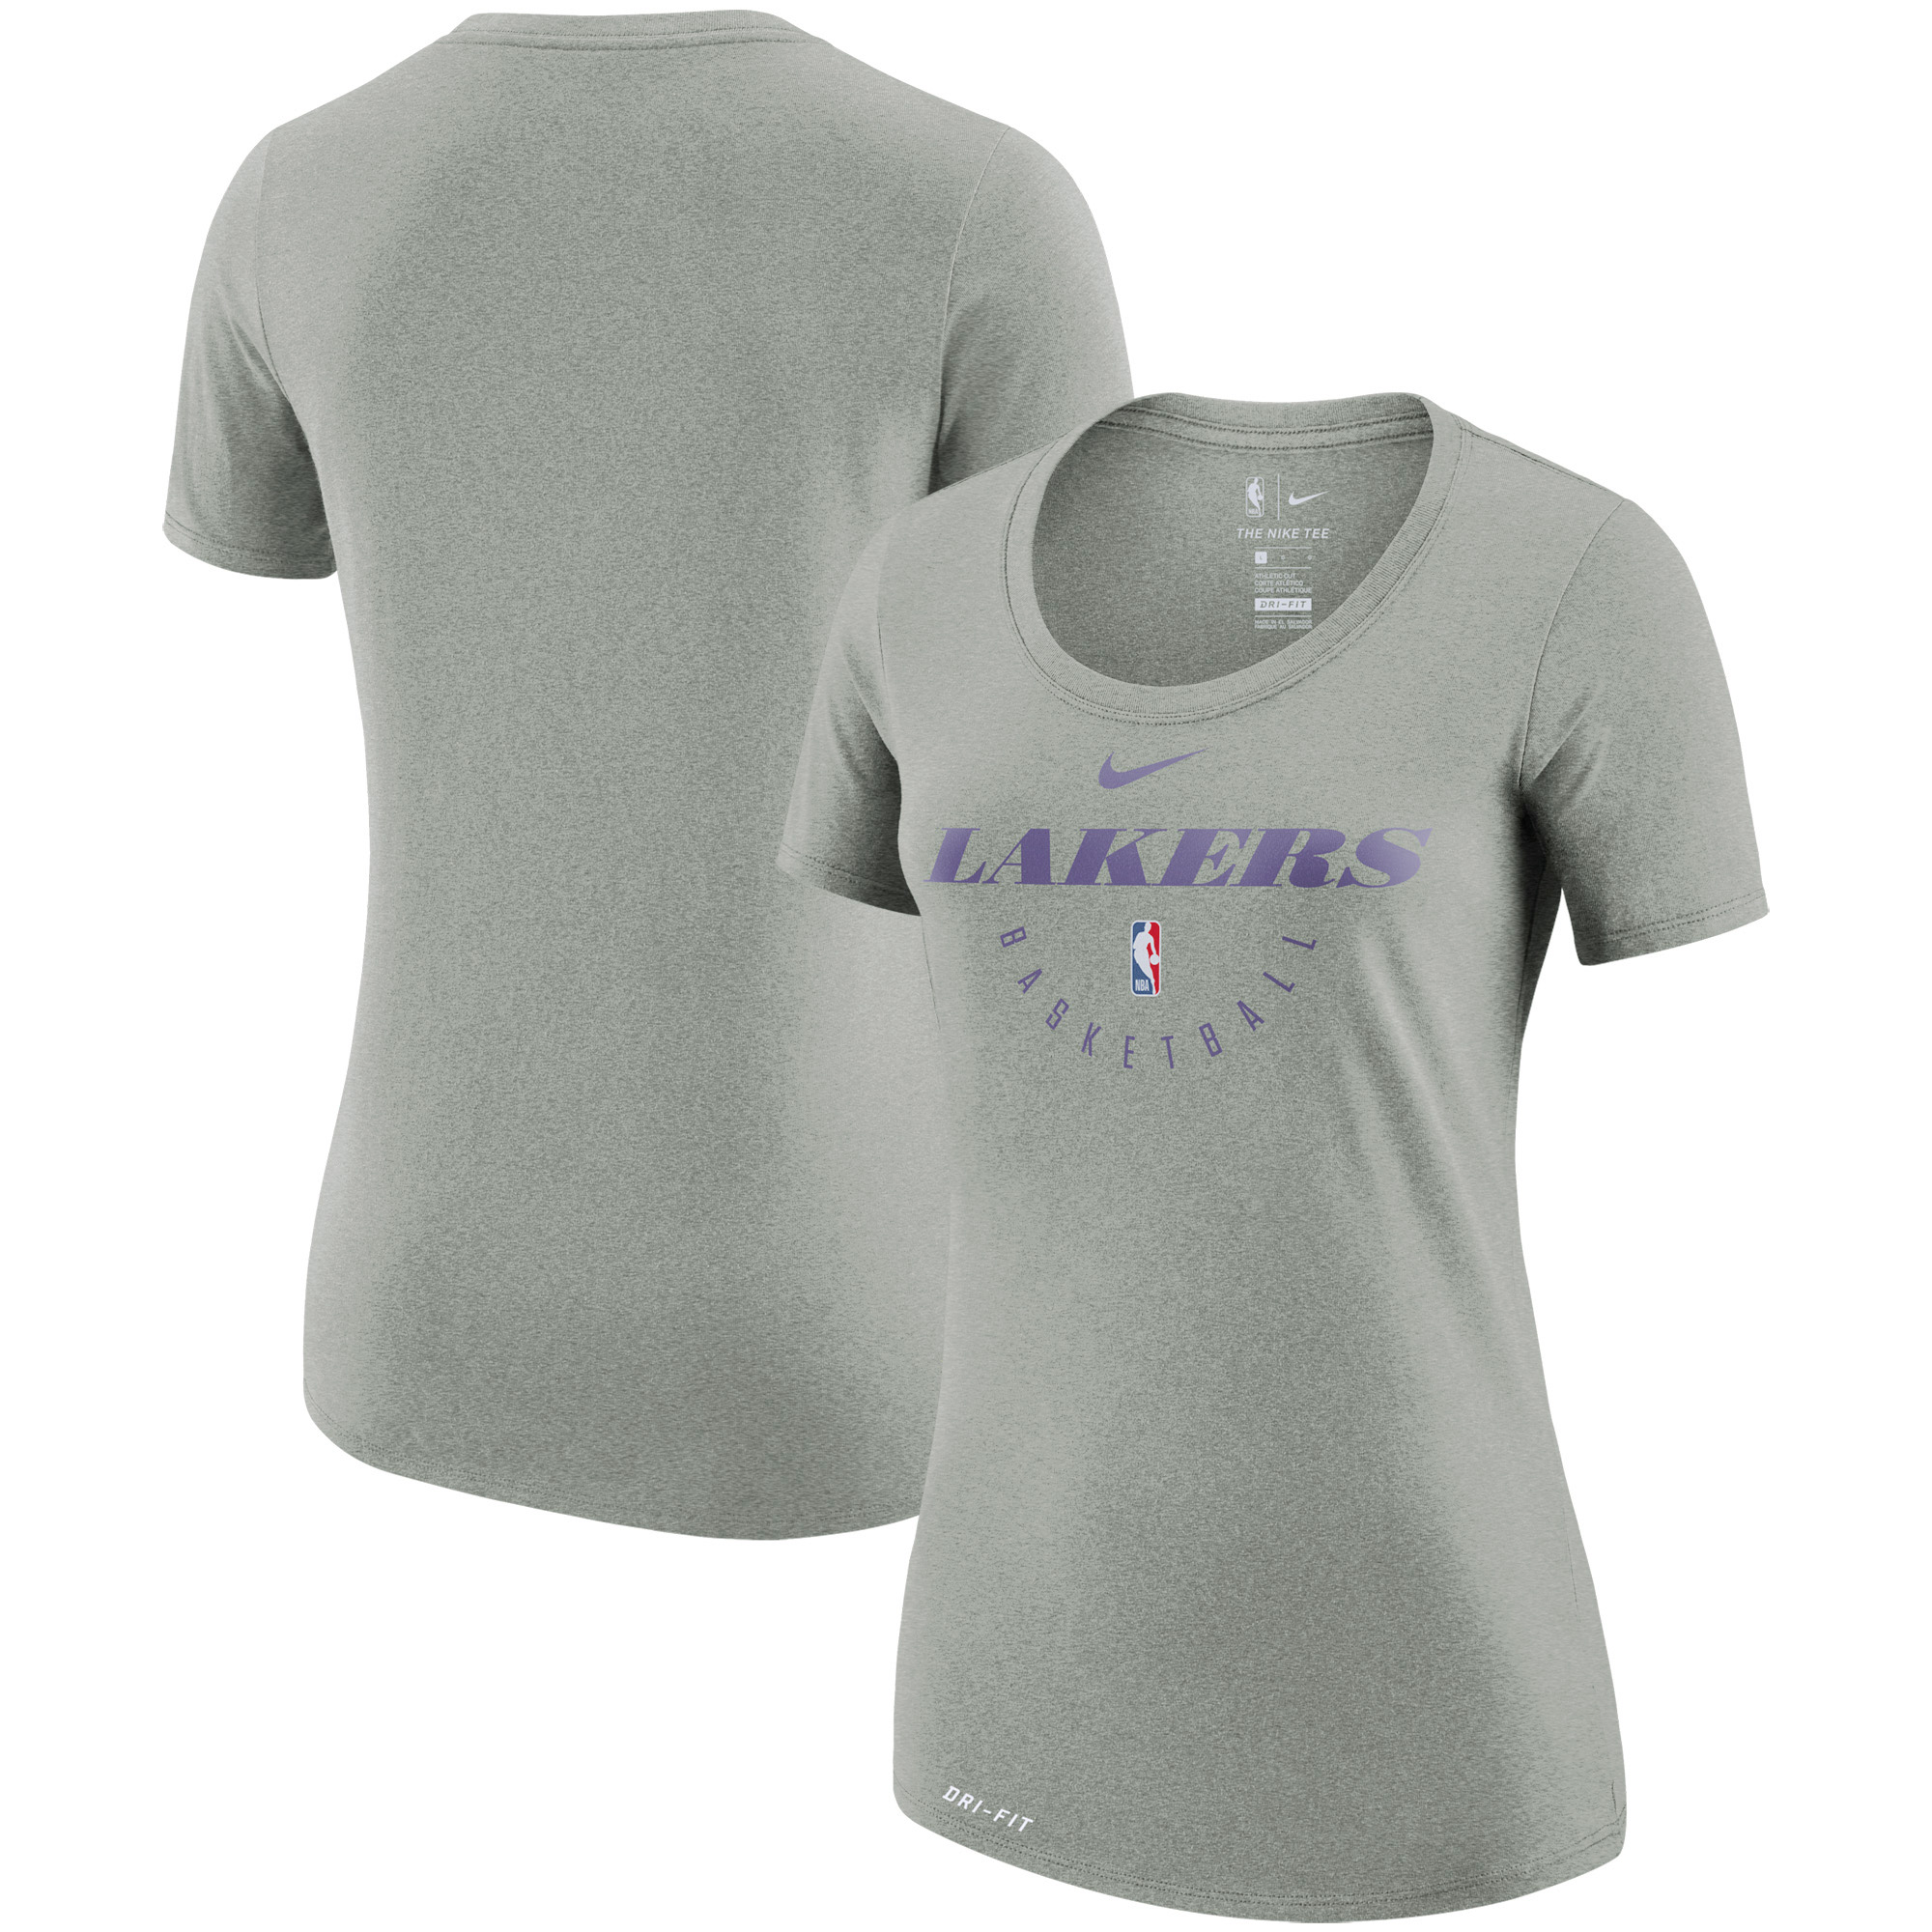 Los Angeles Lakers Nike Women's Practice Performance T-Shirt - Heathered Charcoal